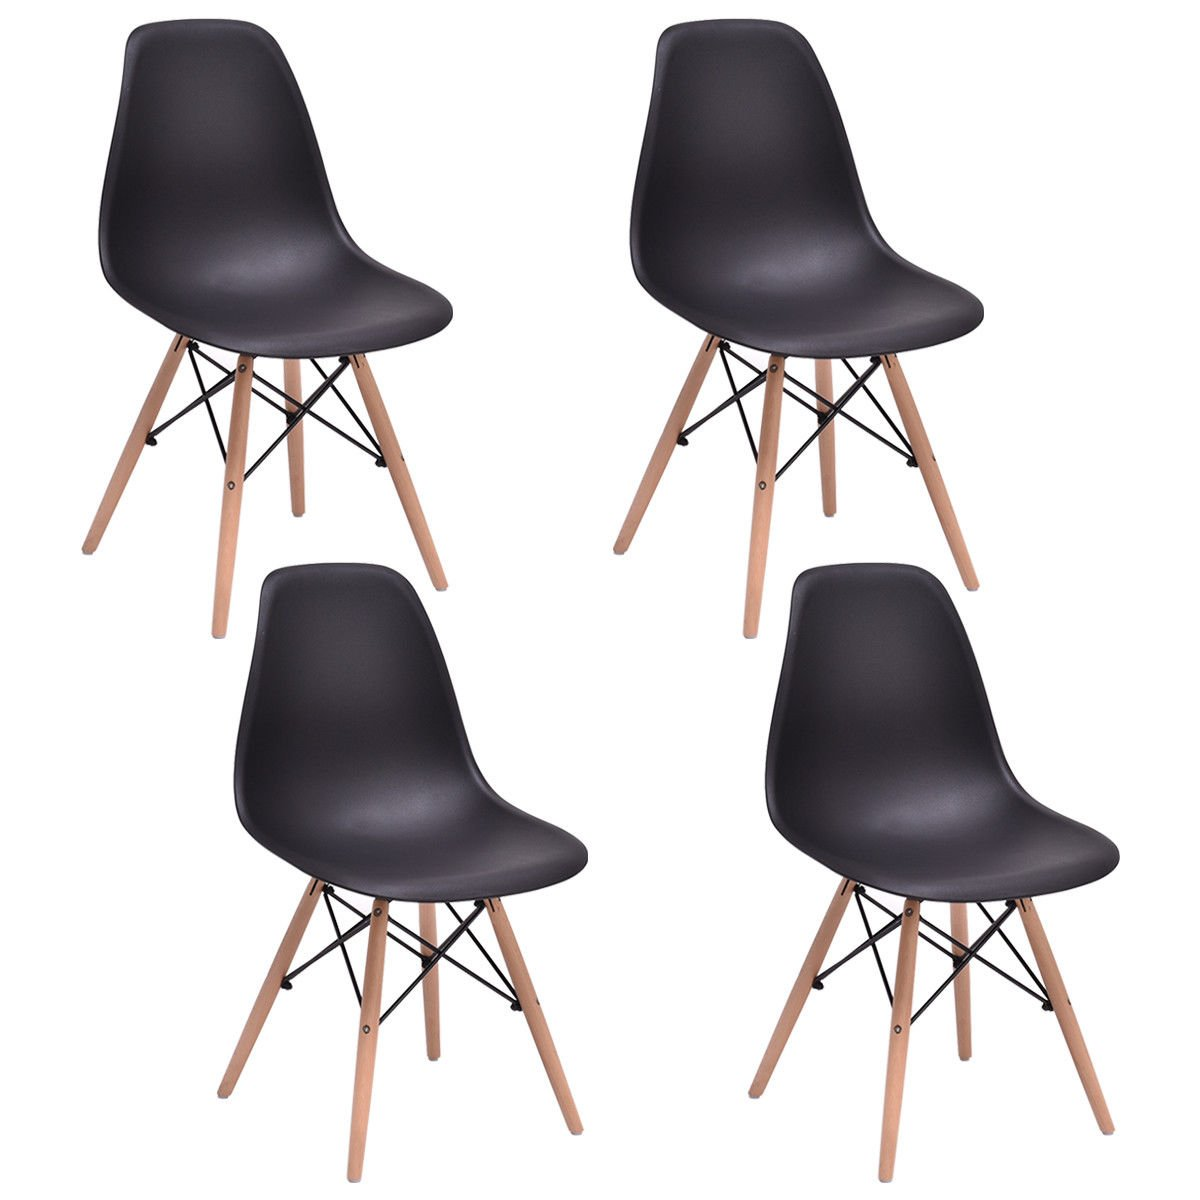 Giantex Set of 4 Mid Century Modern Style DSW Dining Chair Side Wood Leg (Black)